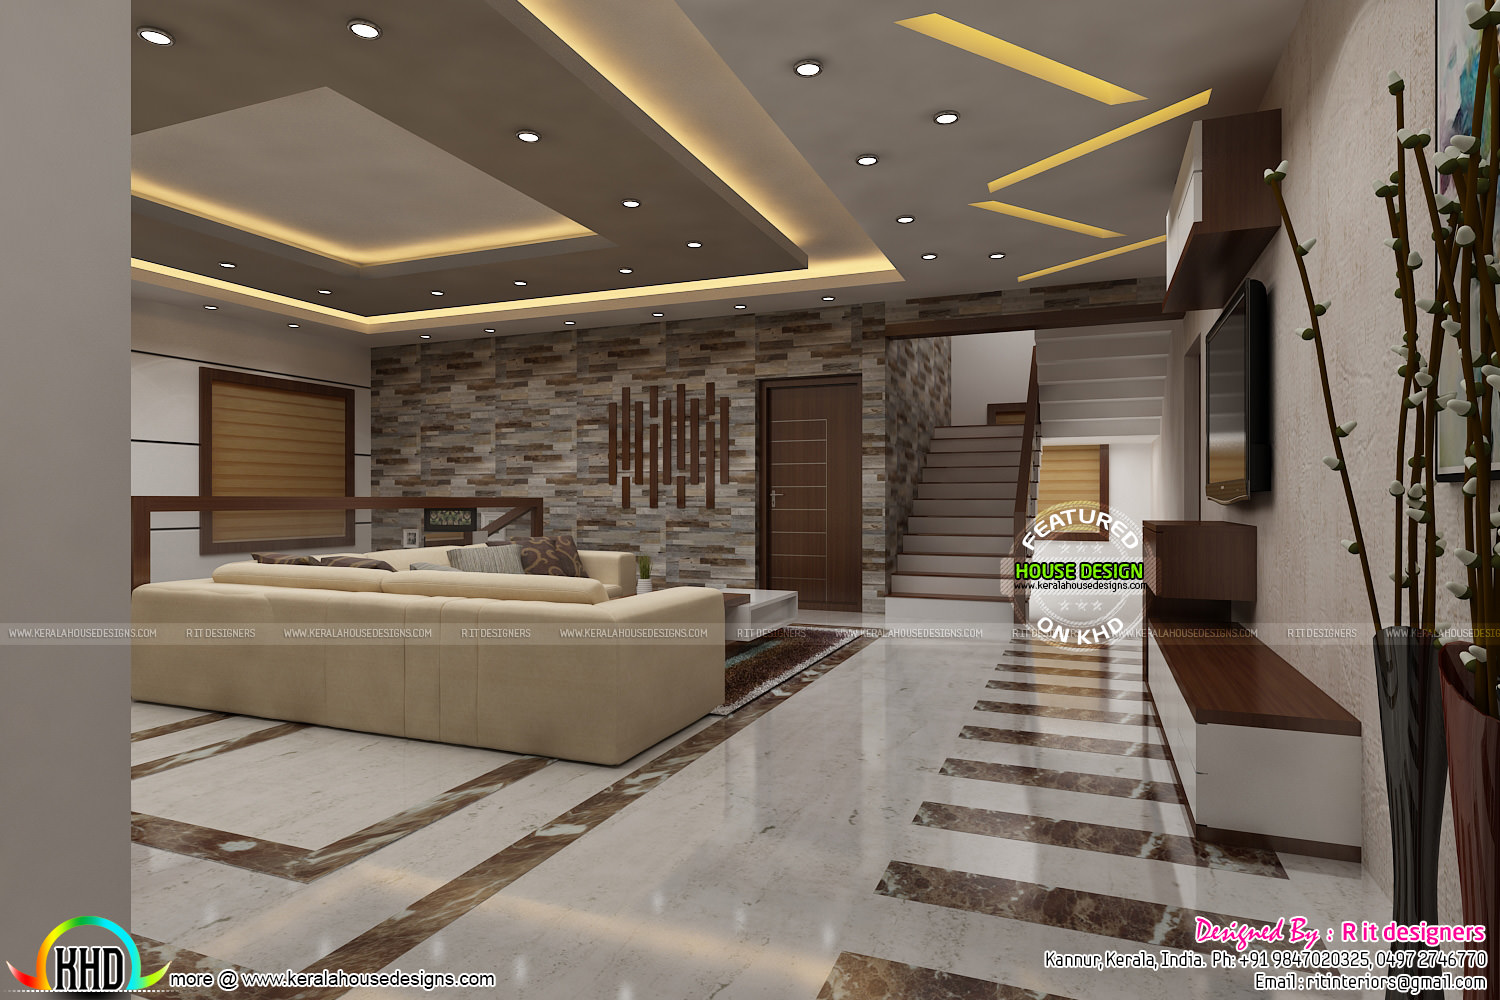 Most modern kerala living room interior kerala home for Interior designs for houses